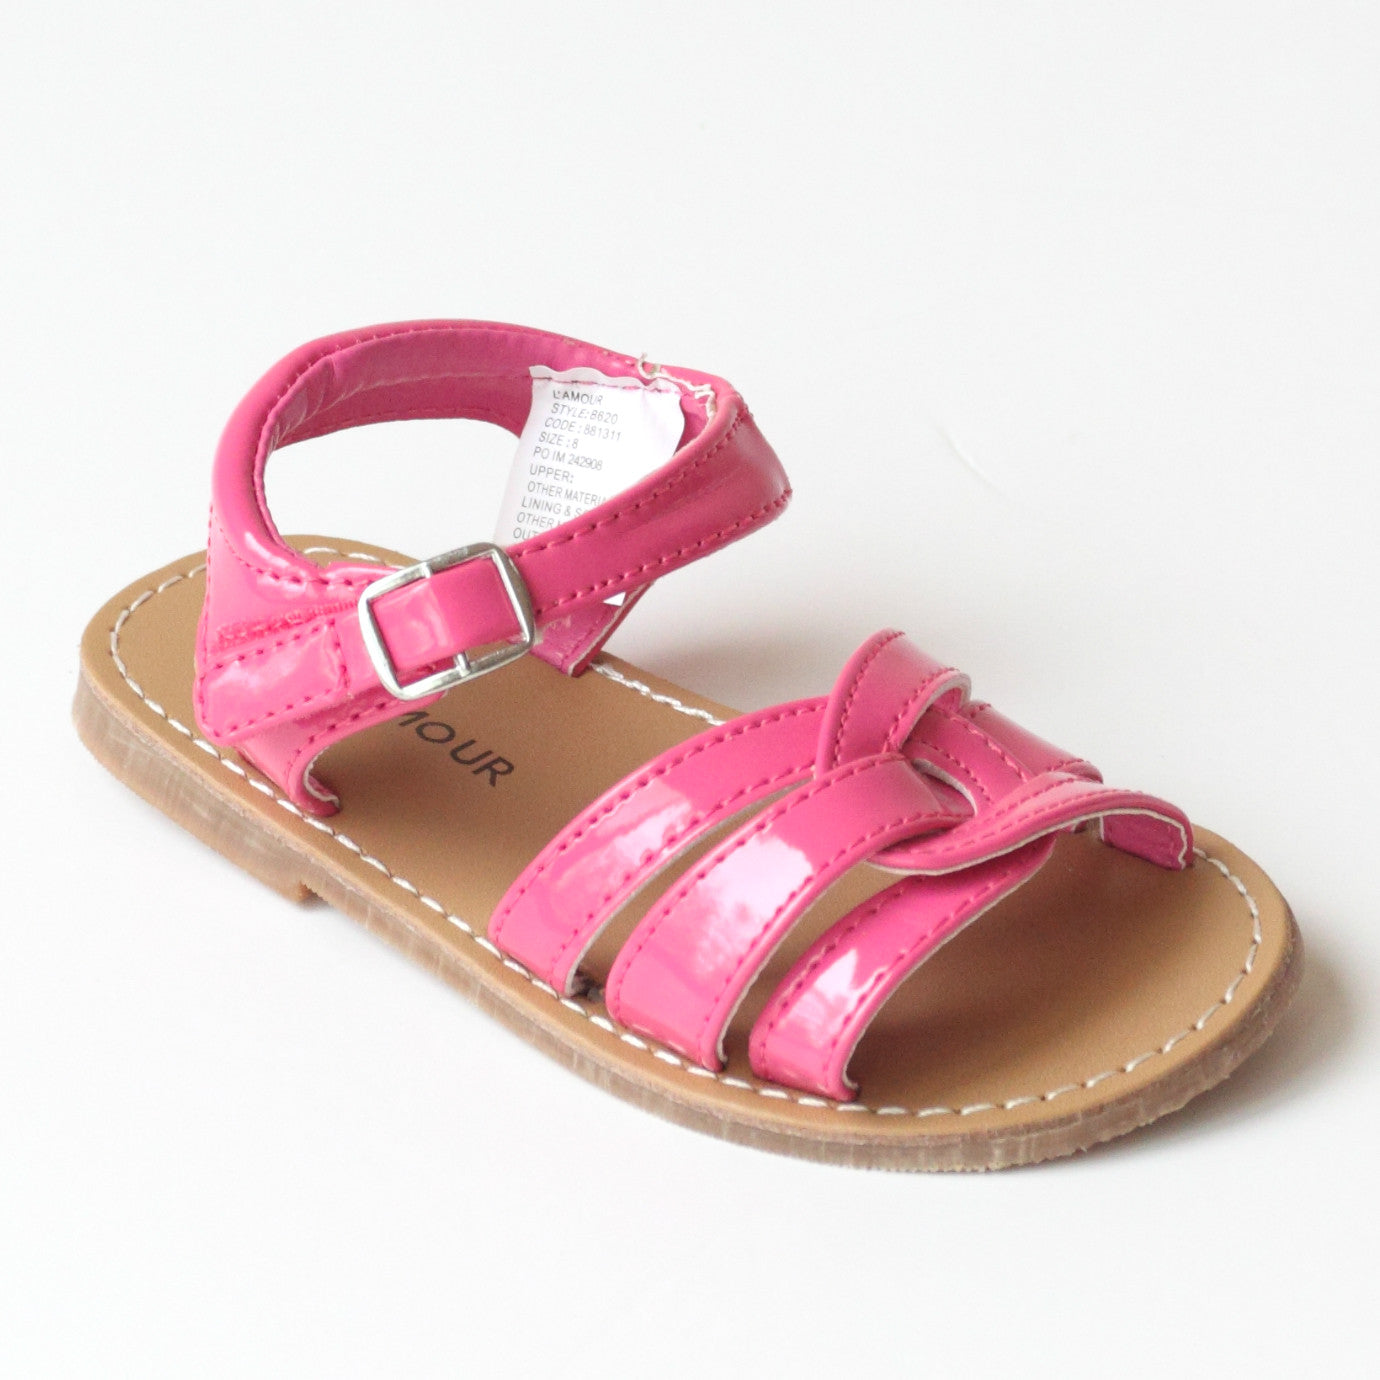 6f8f03142 ... L Amour Girls B620 Fuchsia Braided Sandals ...